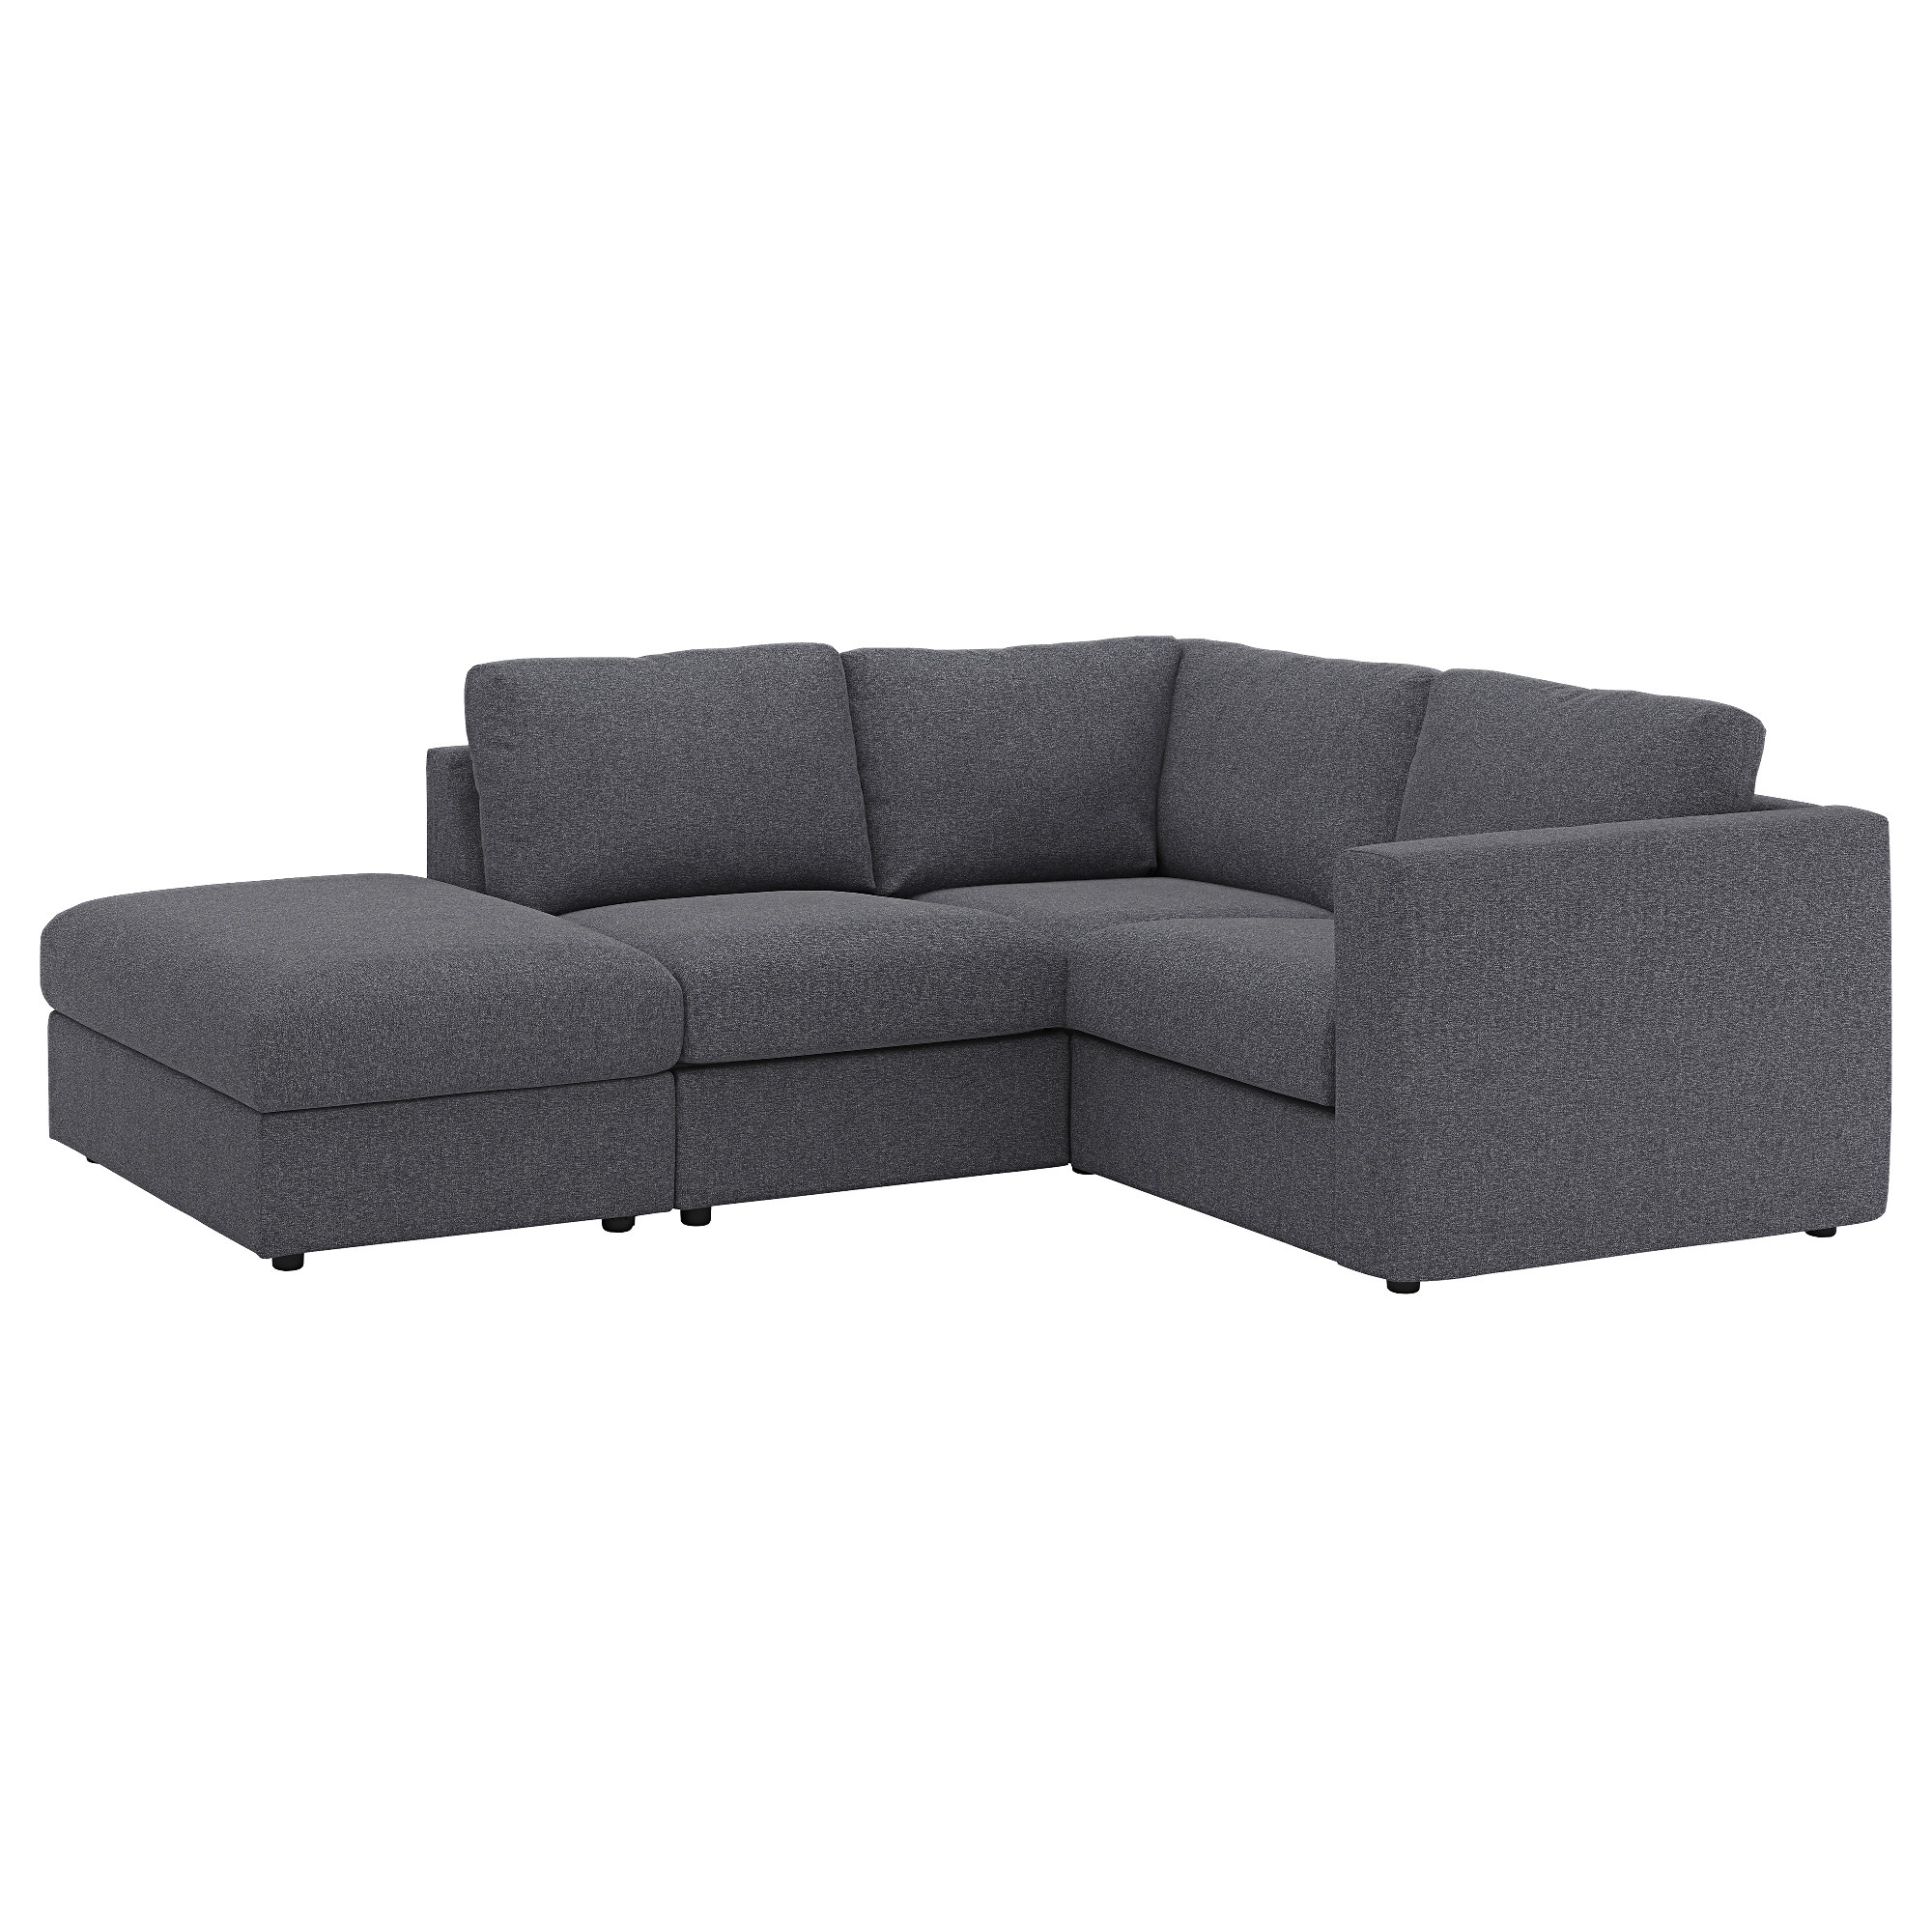 Vimle Sectional, 3 Seat Corner – With Open End/gunnared Medium Gray Regarding Most Current Haven 3 Piece Sectionals (Gallery 7 of 20)